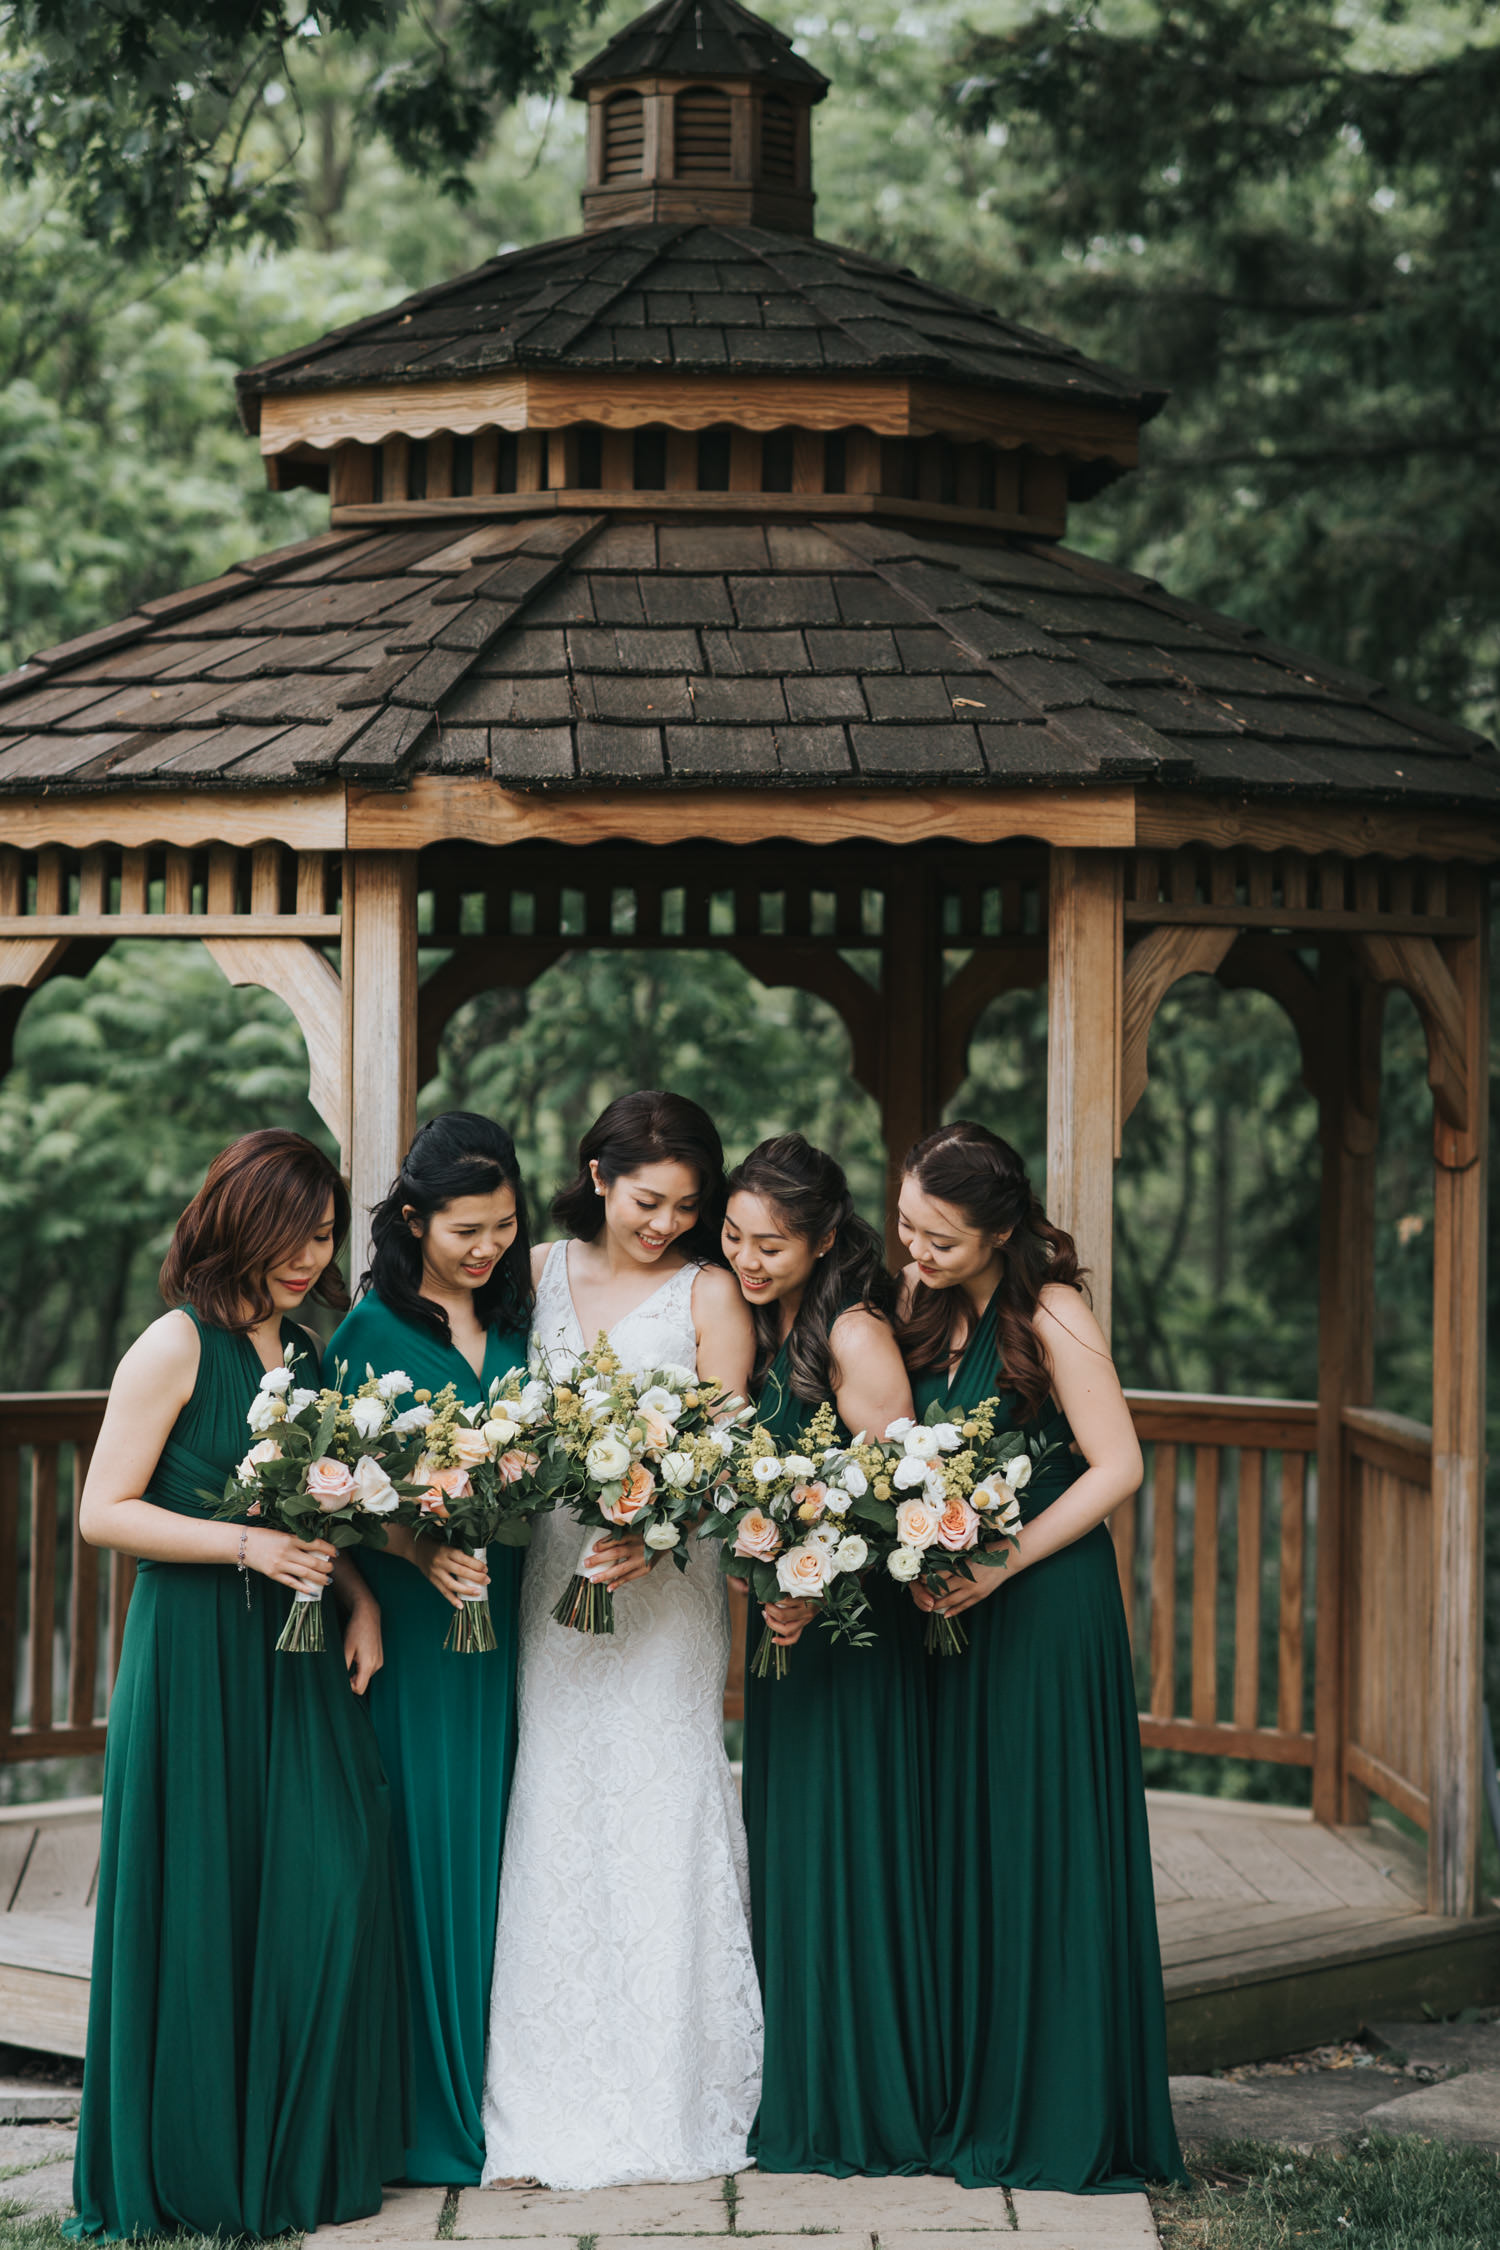 Doctor's House bride and bridesmaids at wooden gazebo photos